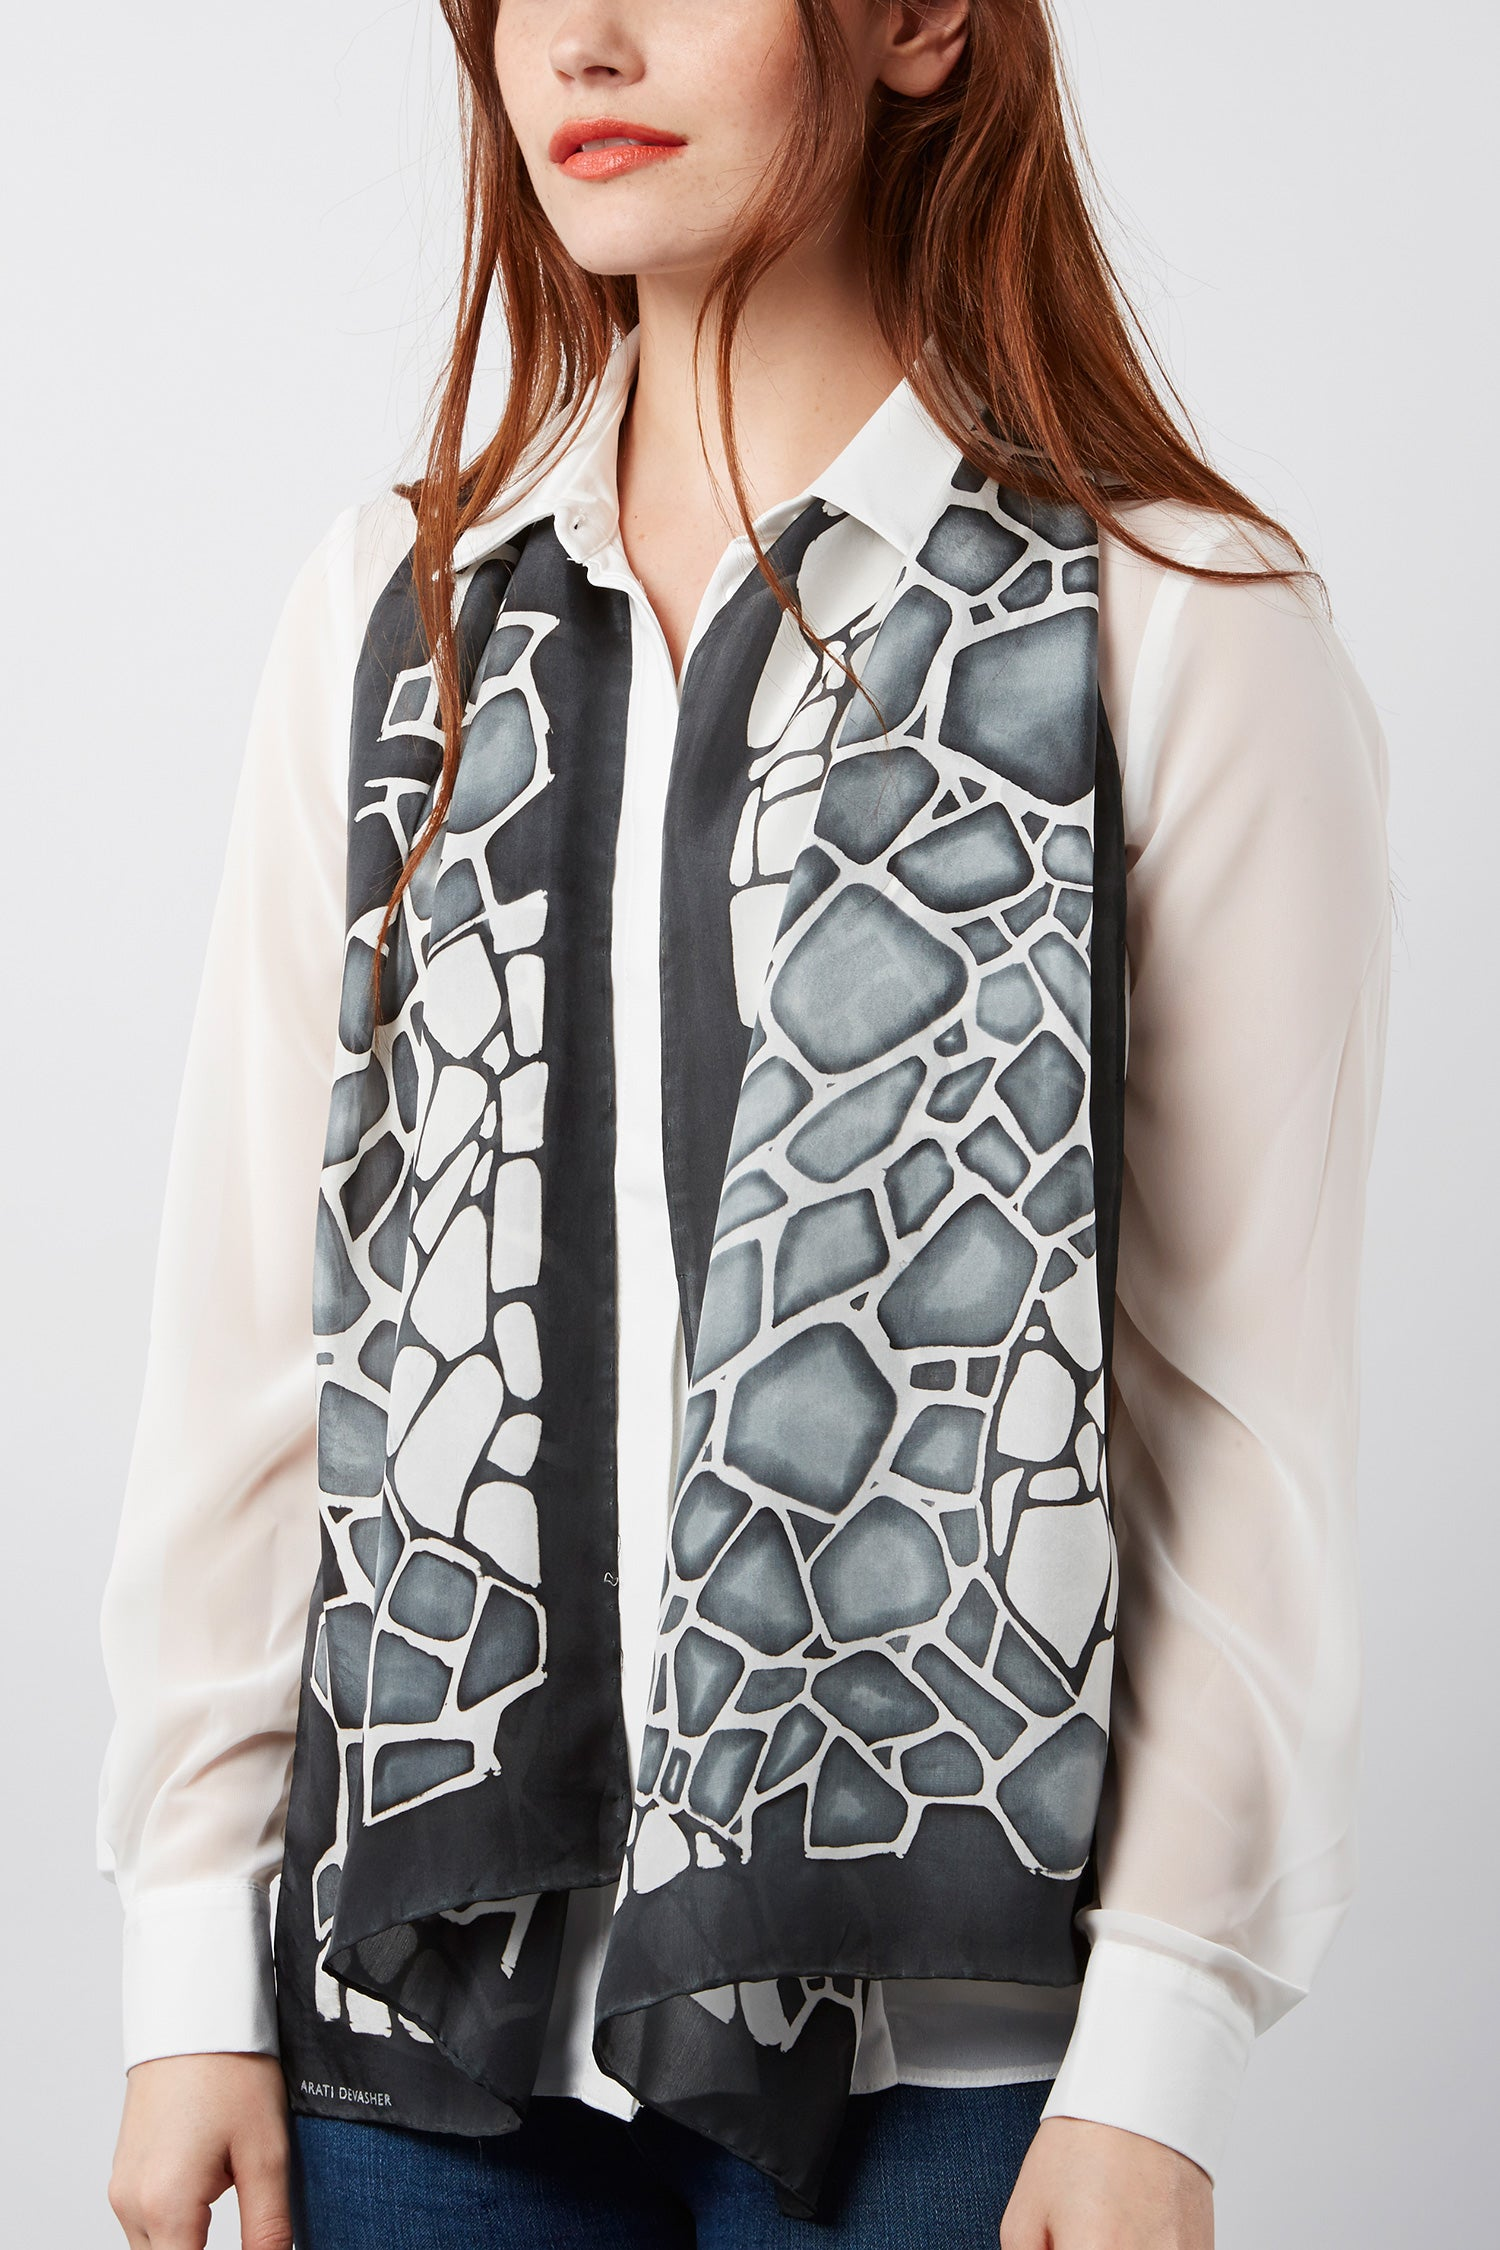 Granite silk scarf